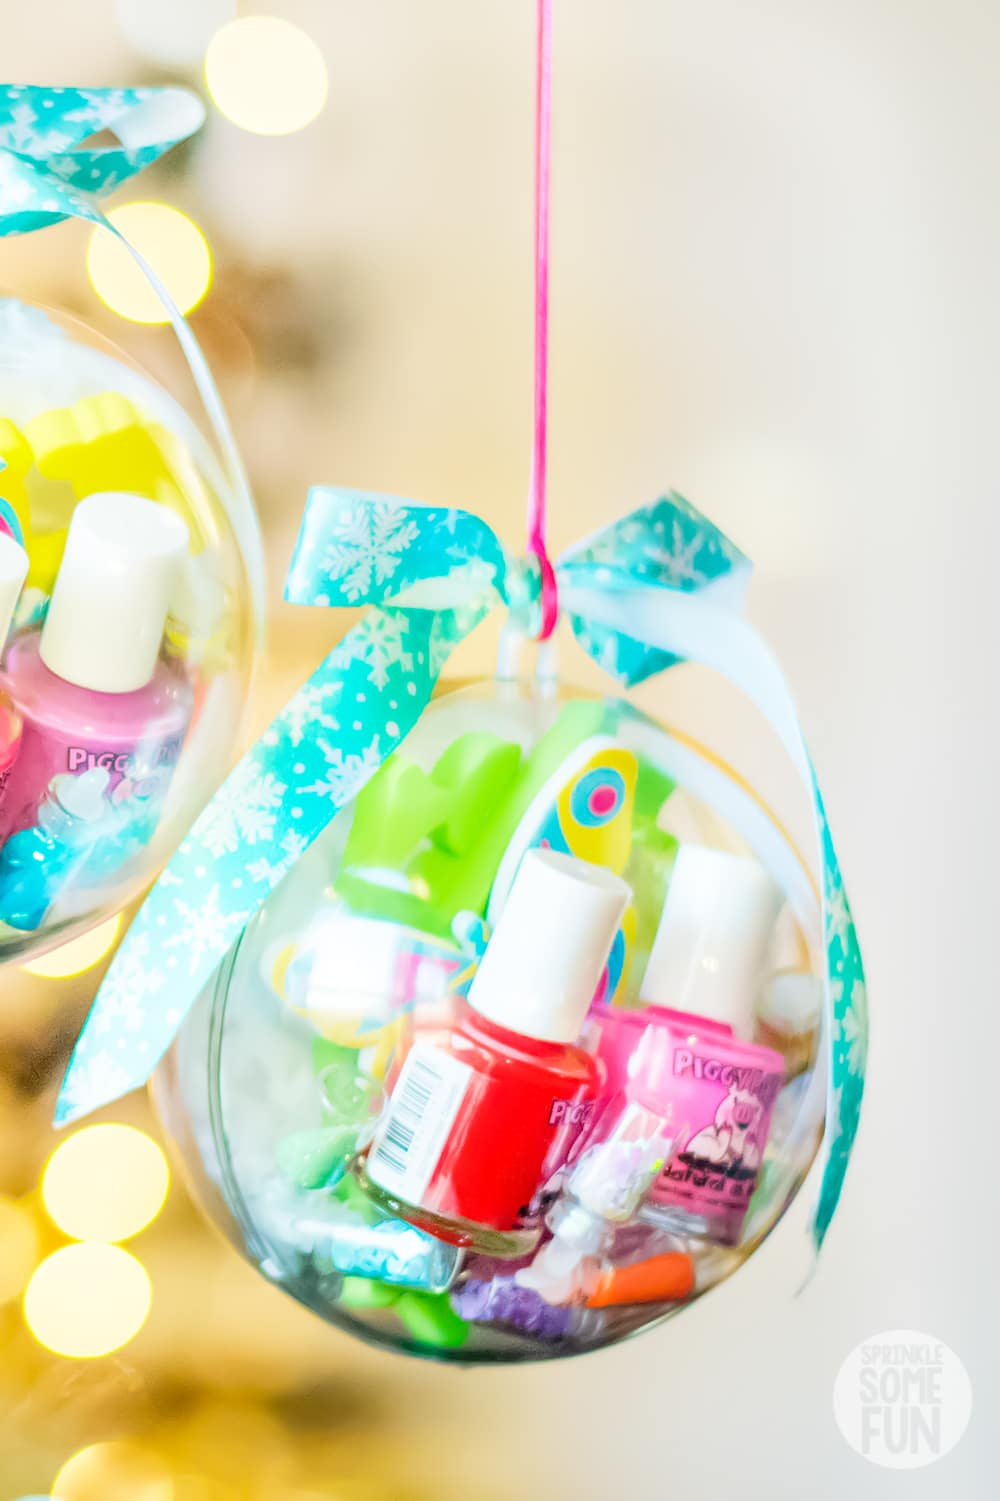 Christmas Gift Ideas For Friends Girls.Nail Kit Ornaments Diy Christmas Gift For Girls